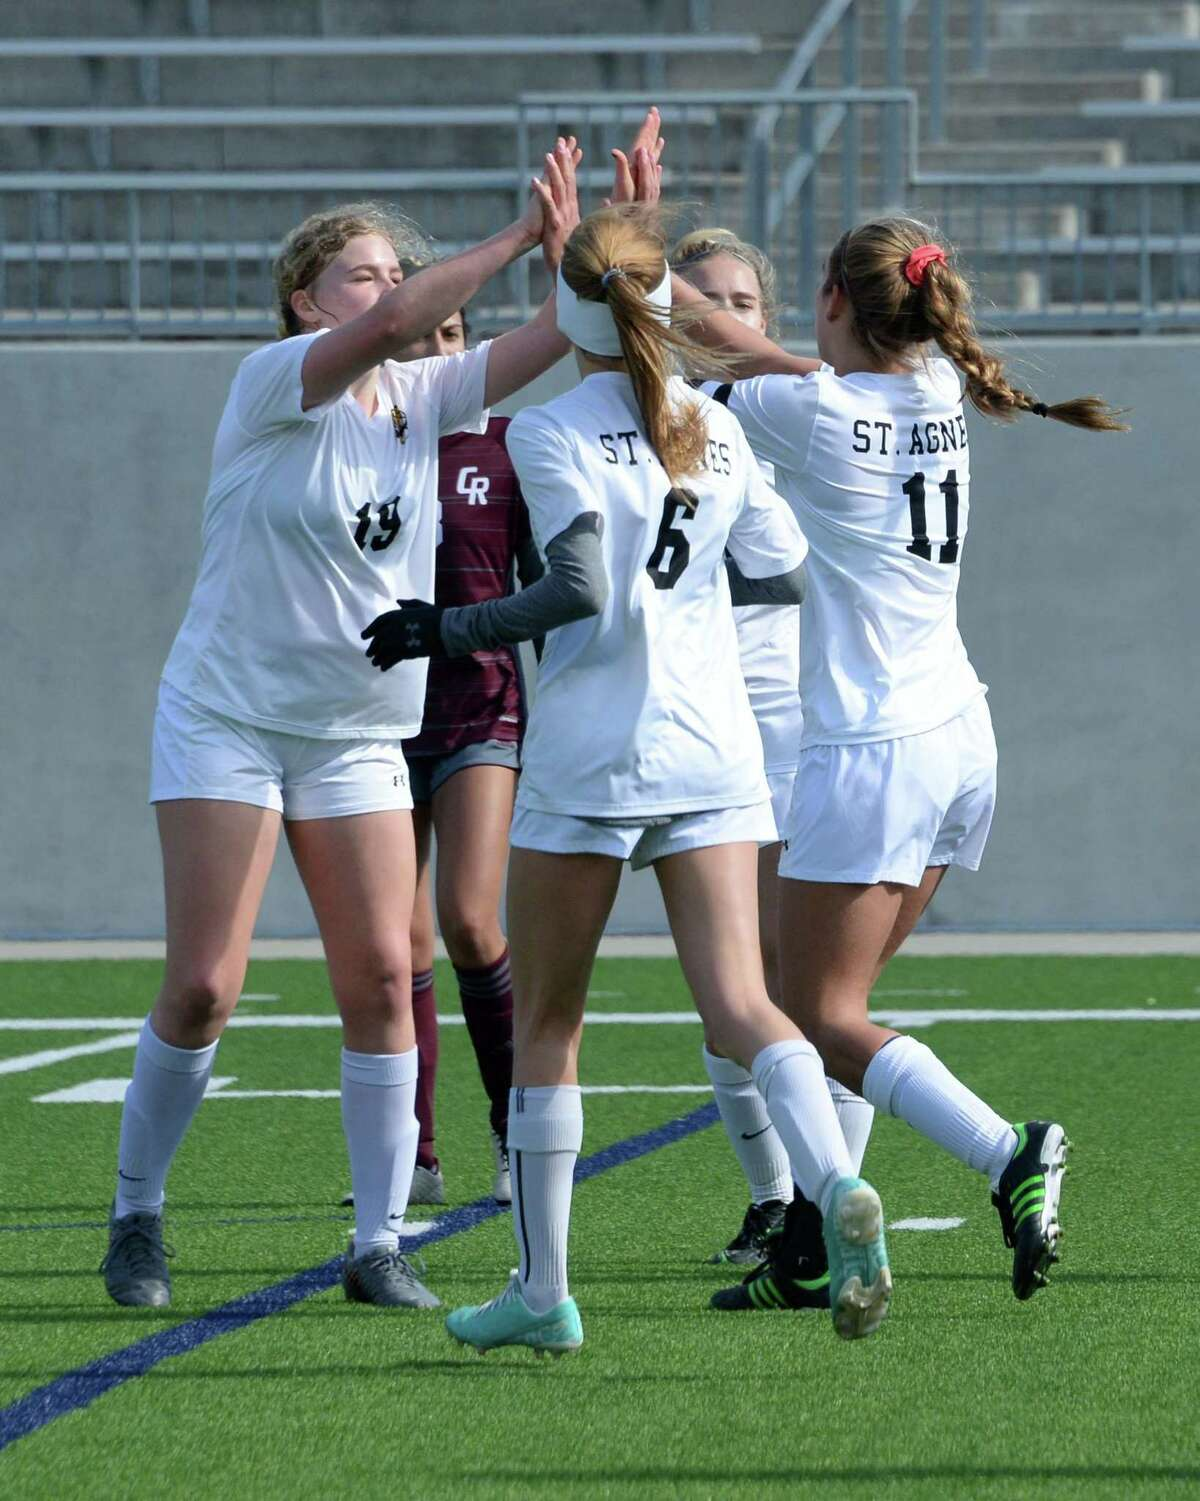 The Tigers celebrate a goal by Lauren Geczik (11) on a penalty kick during the first half of a high school soccer game between the Cinco Ranch Cougars and the St. Agnes Tigers in the Cougar Bracket final of the I-10 Shootout on Saturday, January 11, 2020 at Legacy Stadium, Katy, TX.